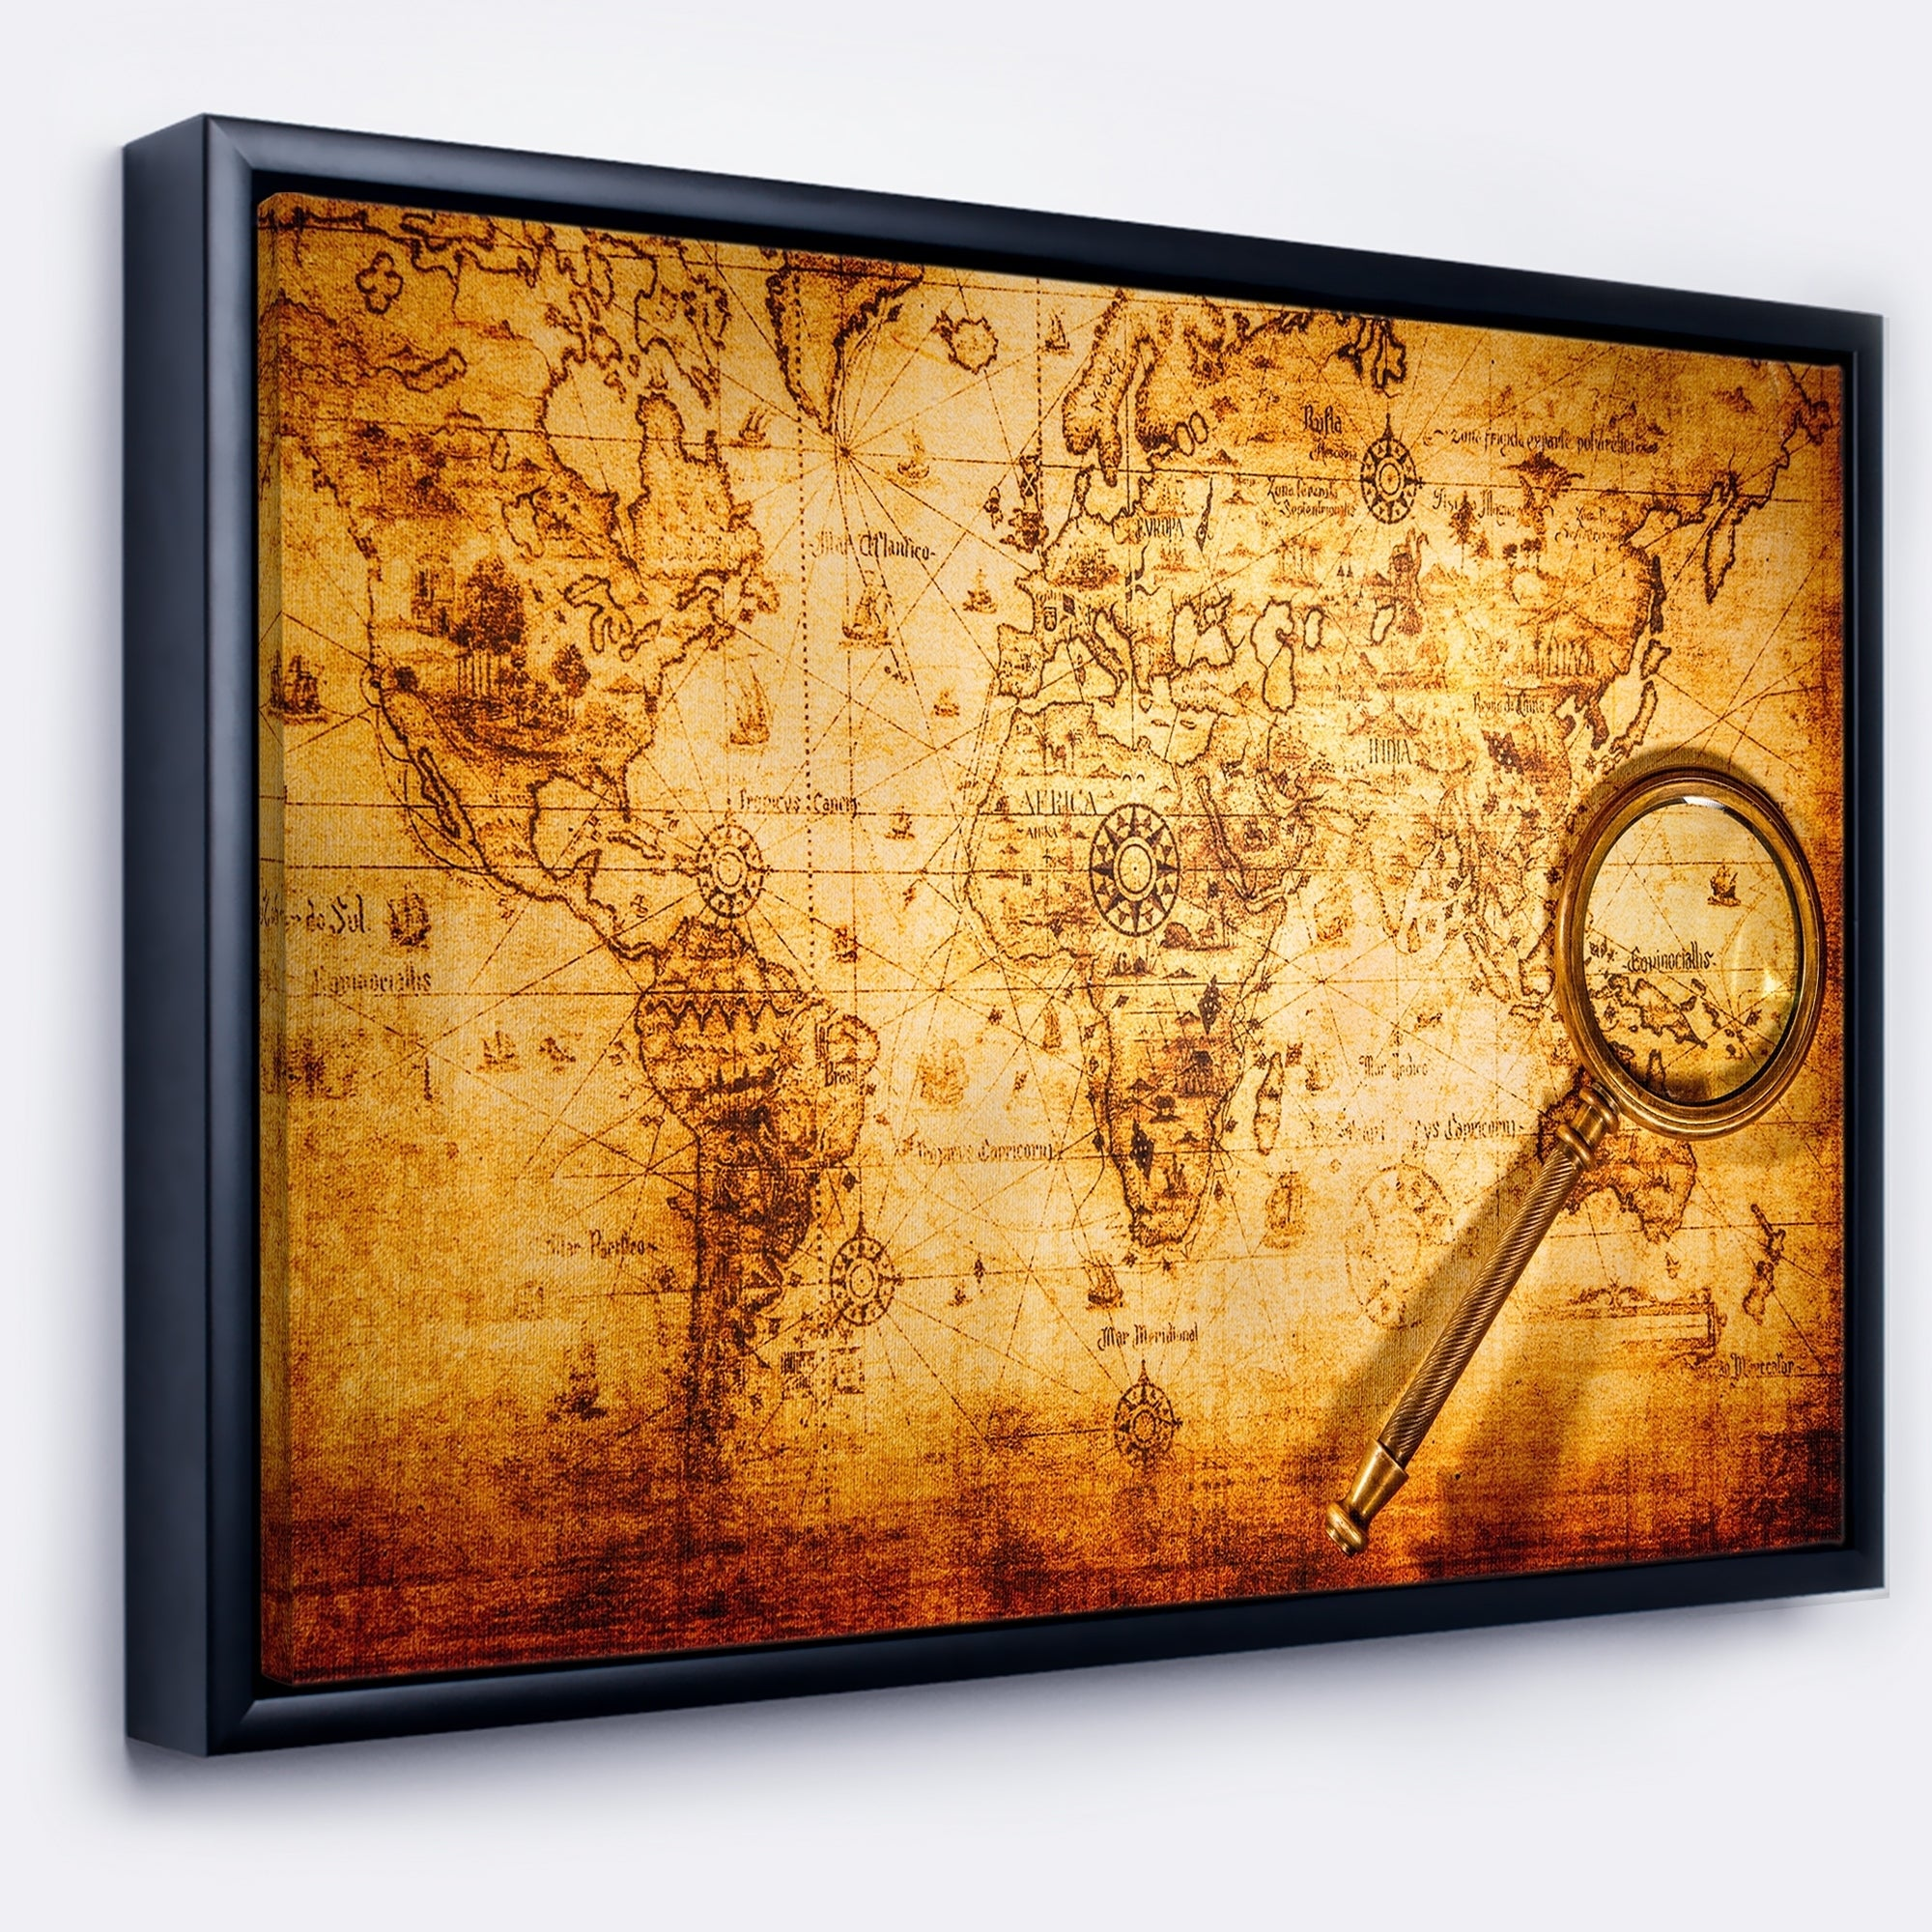 Designart Magnifying Glass On World Map Abstract Framed Canvas Art Print